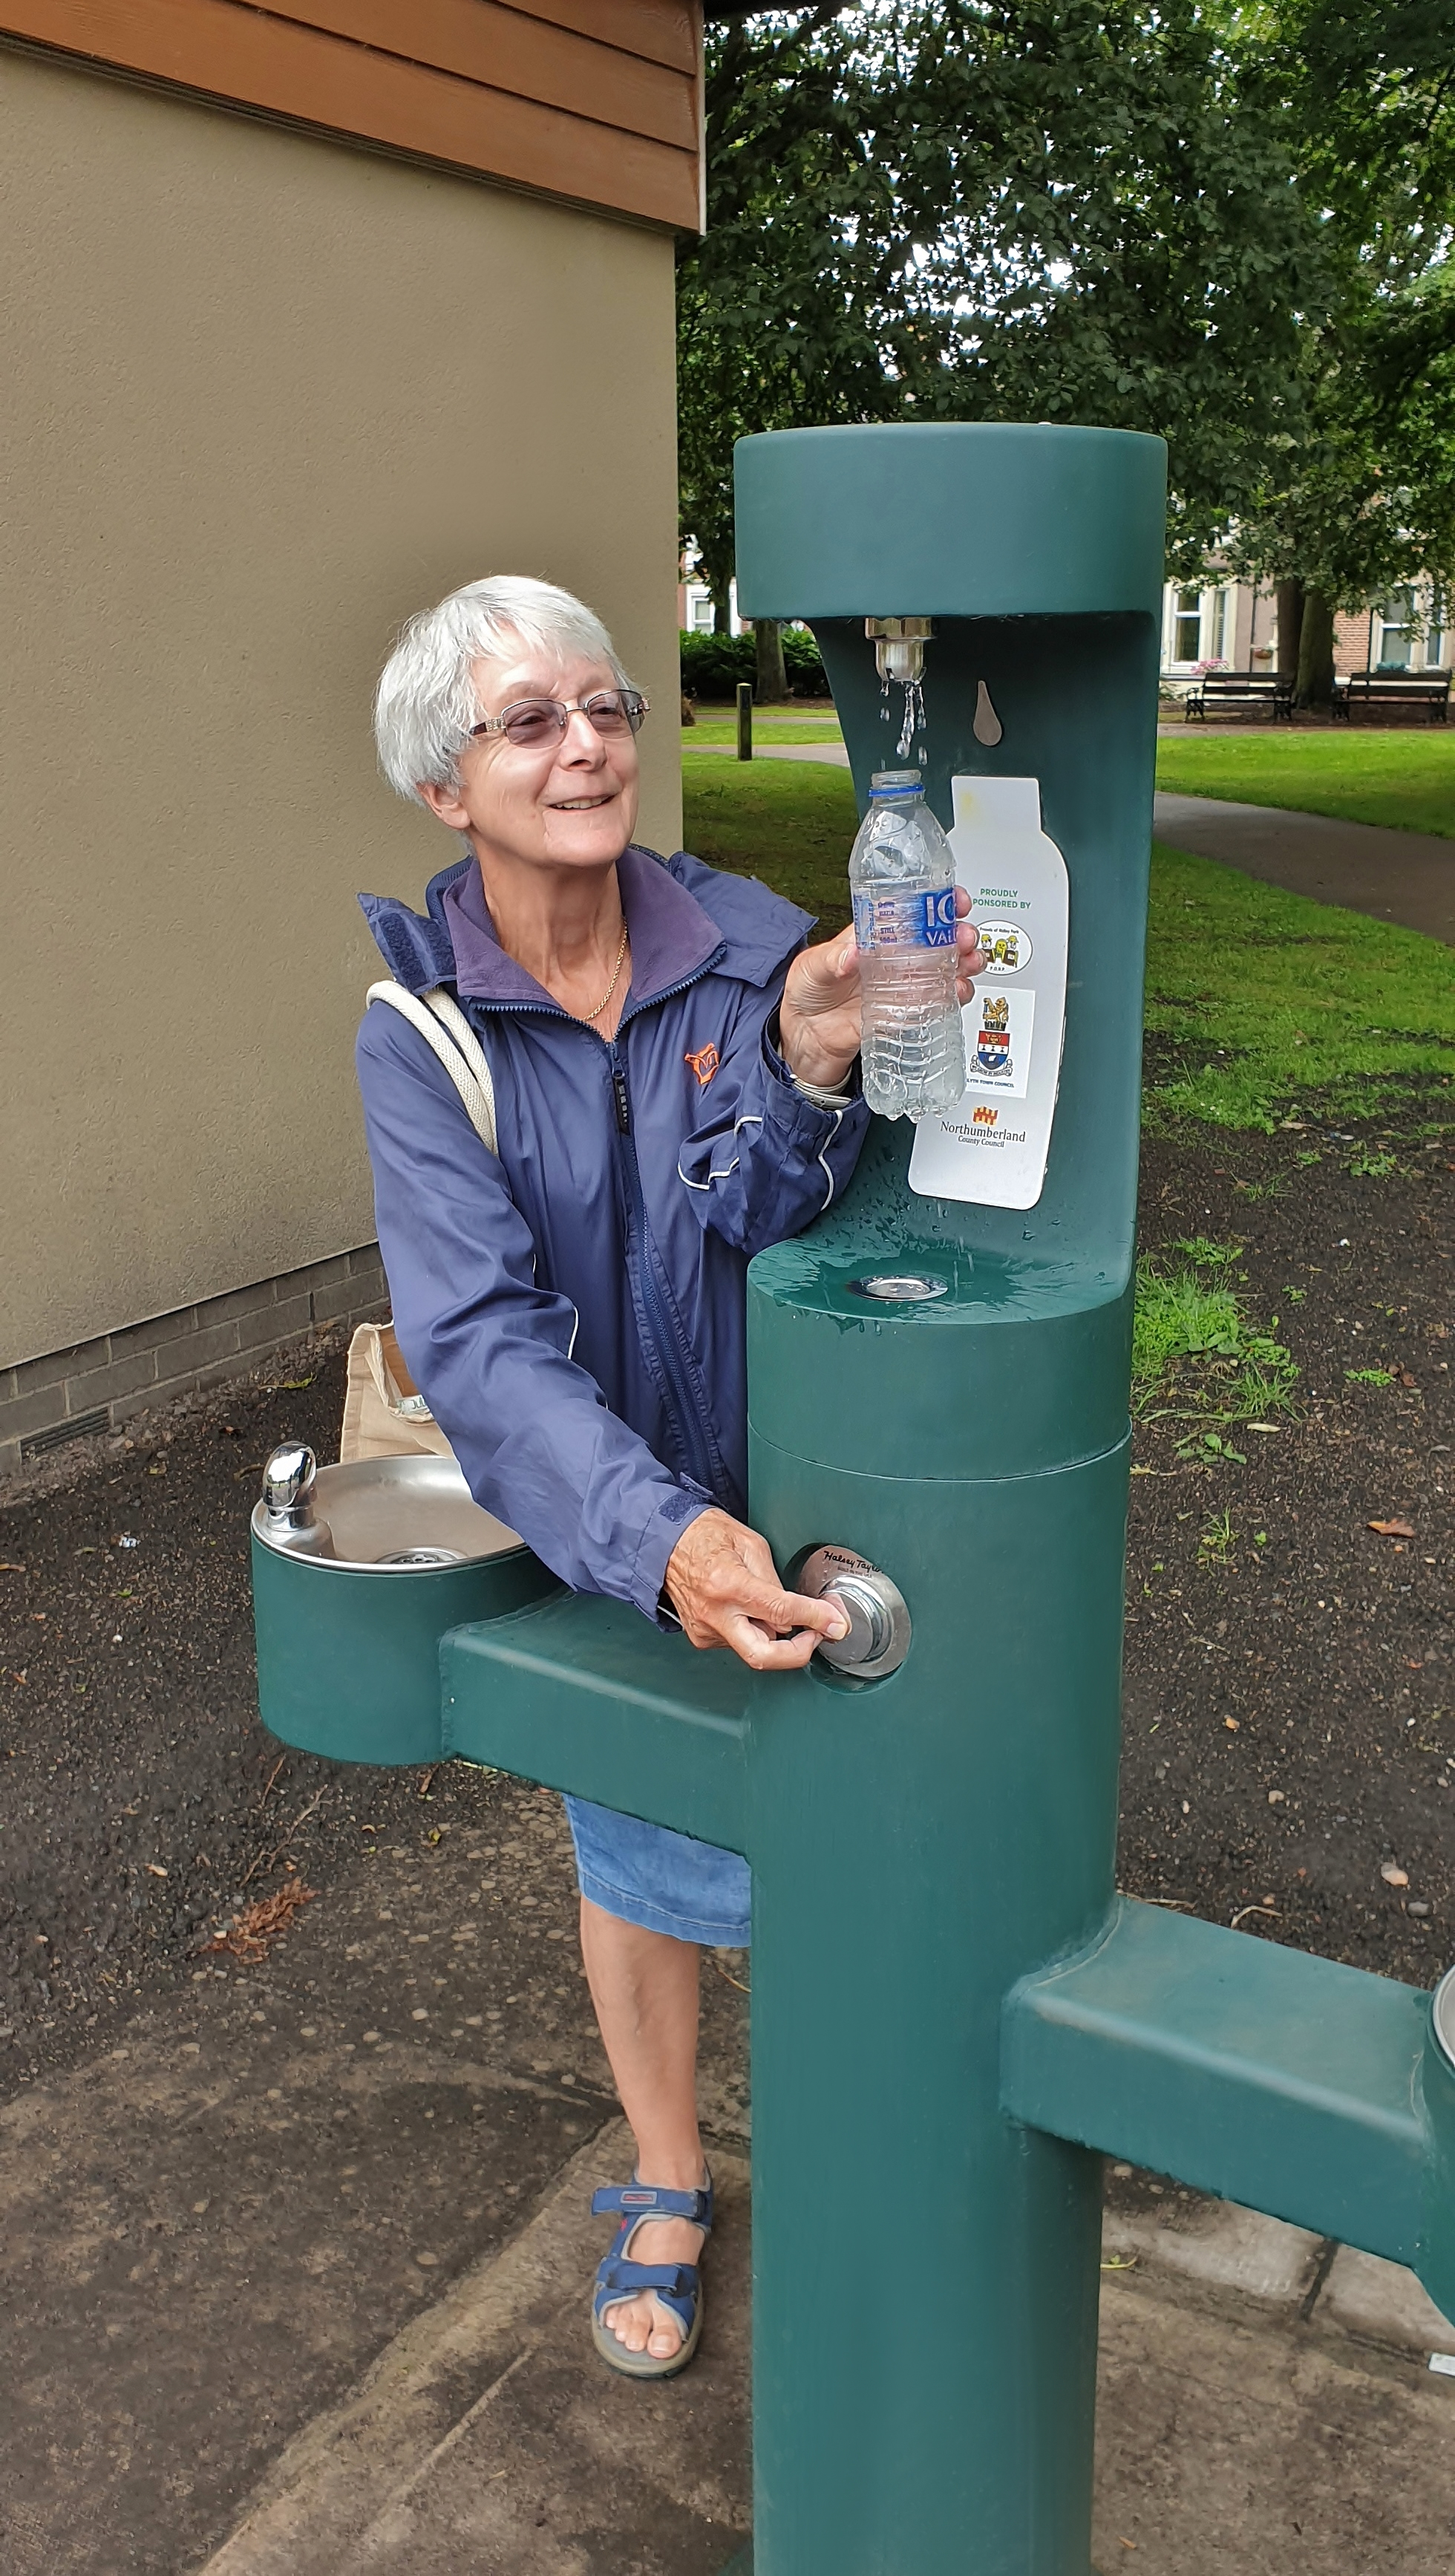 An elderly woman refilling her water bottle at the new drinking fountain.